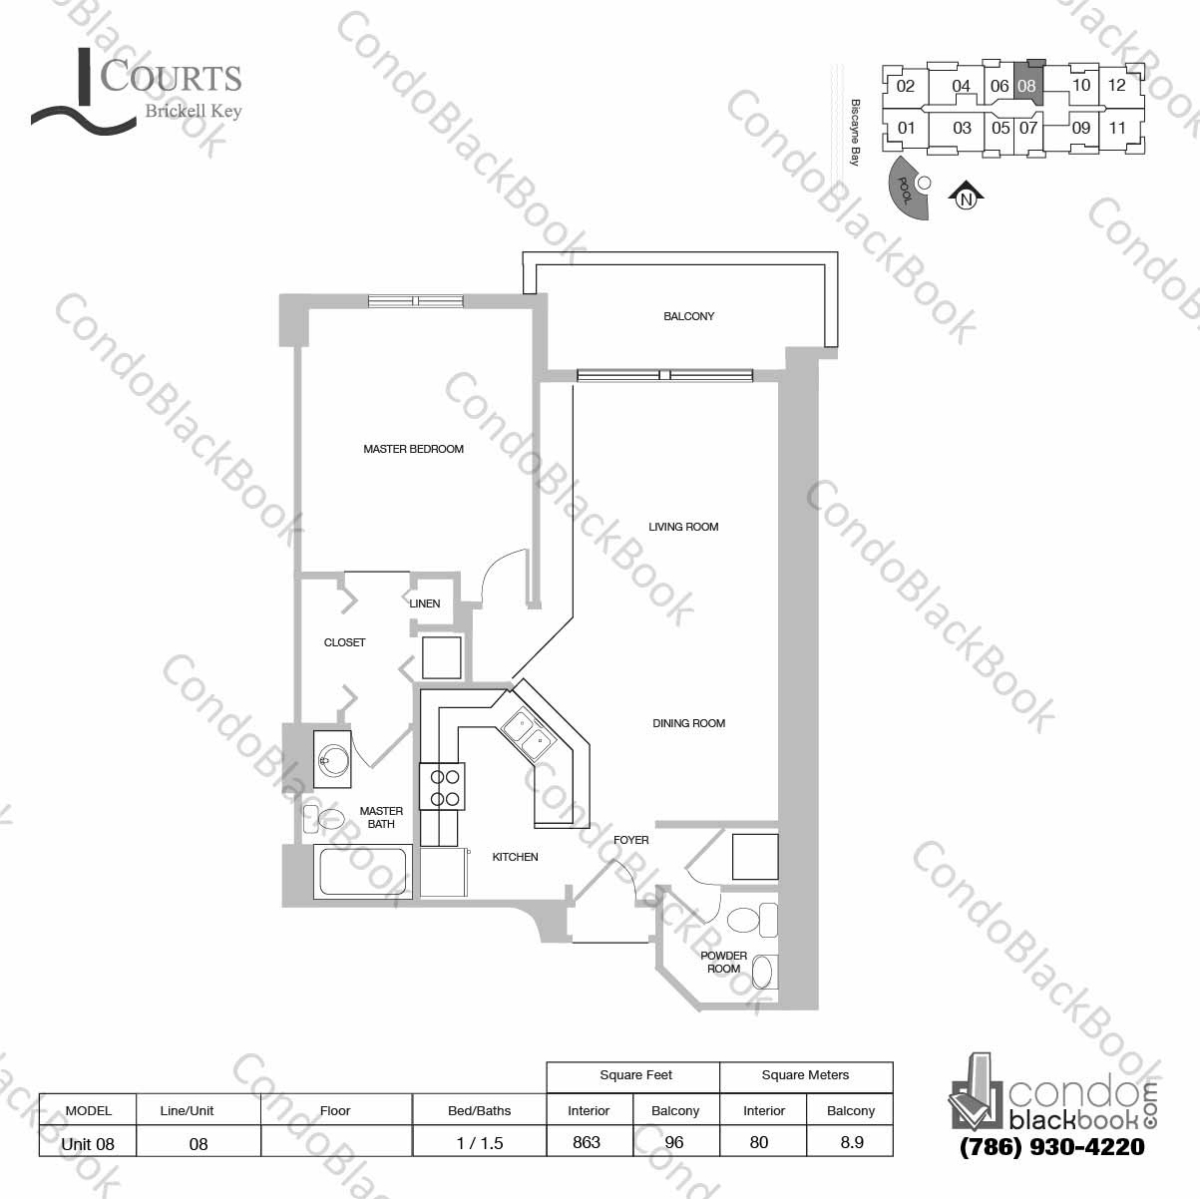 Floor plan for Courts Condo Brickell Key Brickell Key Miami, model Unit 08, line 08, 1 / 1.5 bedrooms, 863 sq ft